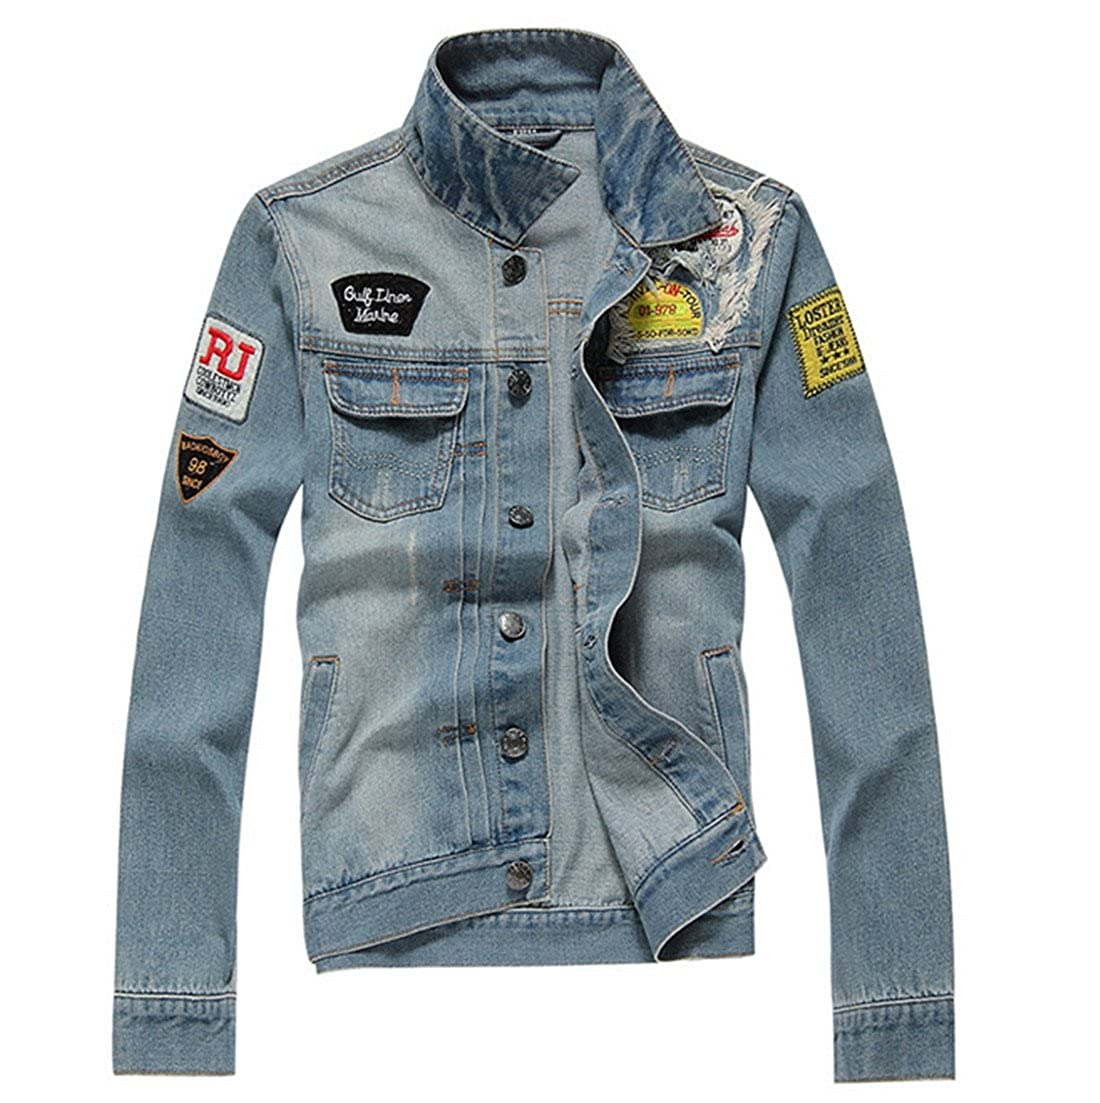 Partiss Men's Outerwear Fashion Frayed Faded Denim Jacket CA20170FNJ019